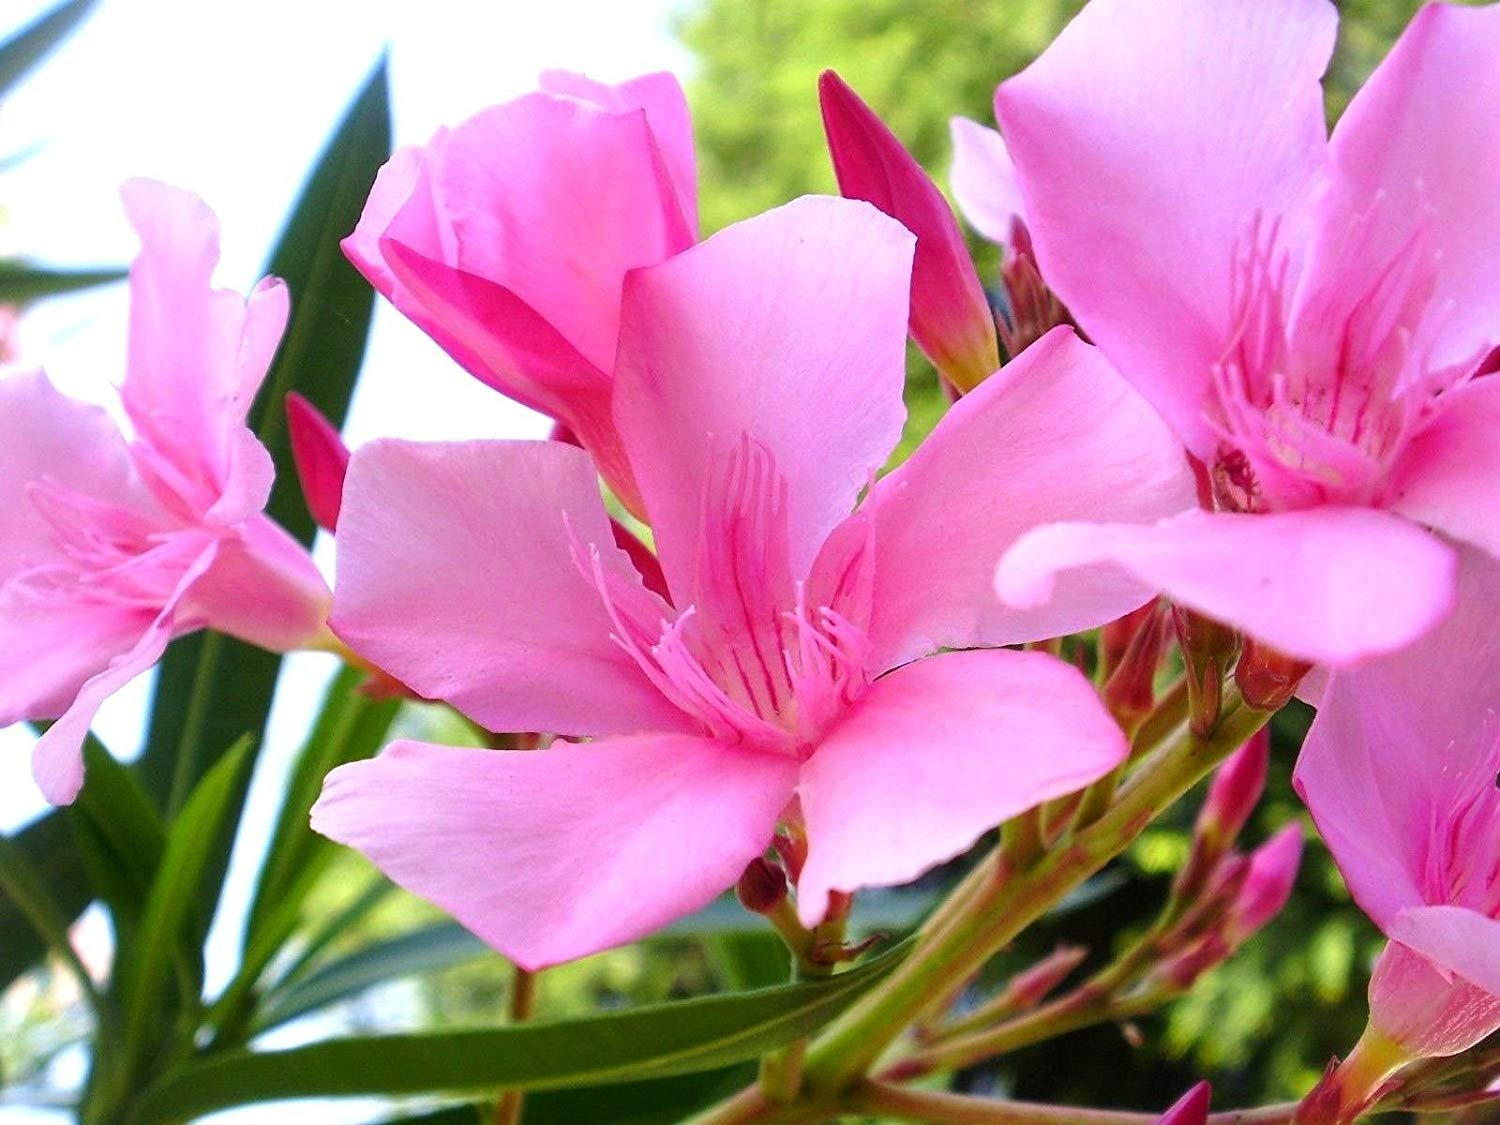 Oleander Bush Live Plant Pink Laurier Rose Adelfa 7-12 inches Tall Cold Hardy Drought Resistant Easy-to-Grow (1 Pant)